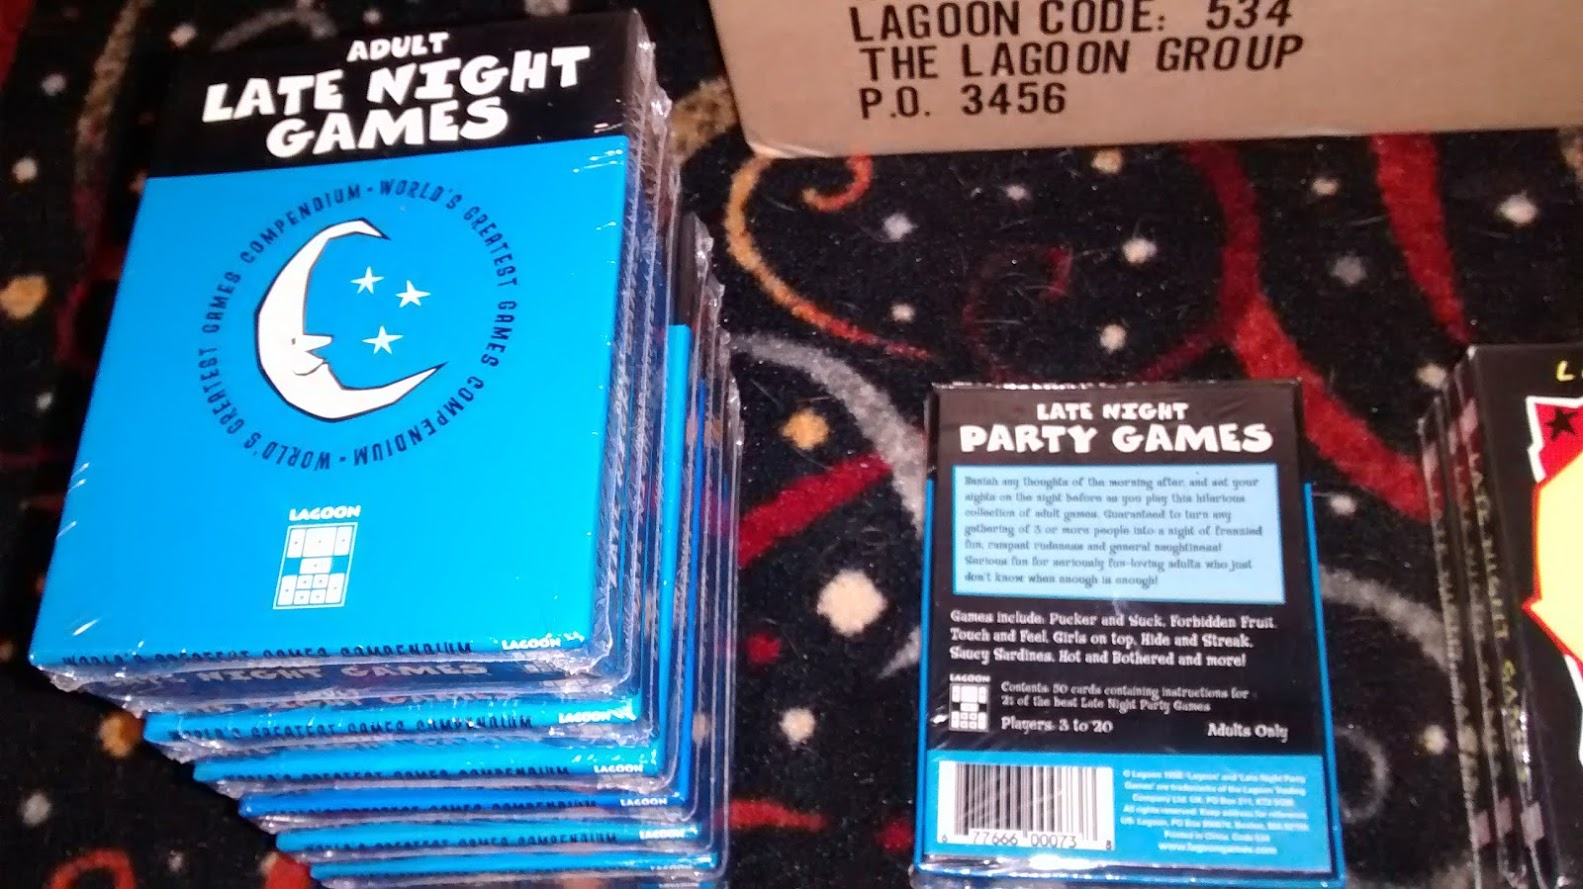 Adult Late Night Games WHOLESALE CASE LOT $2440 value